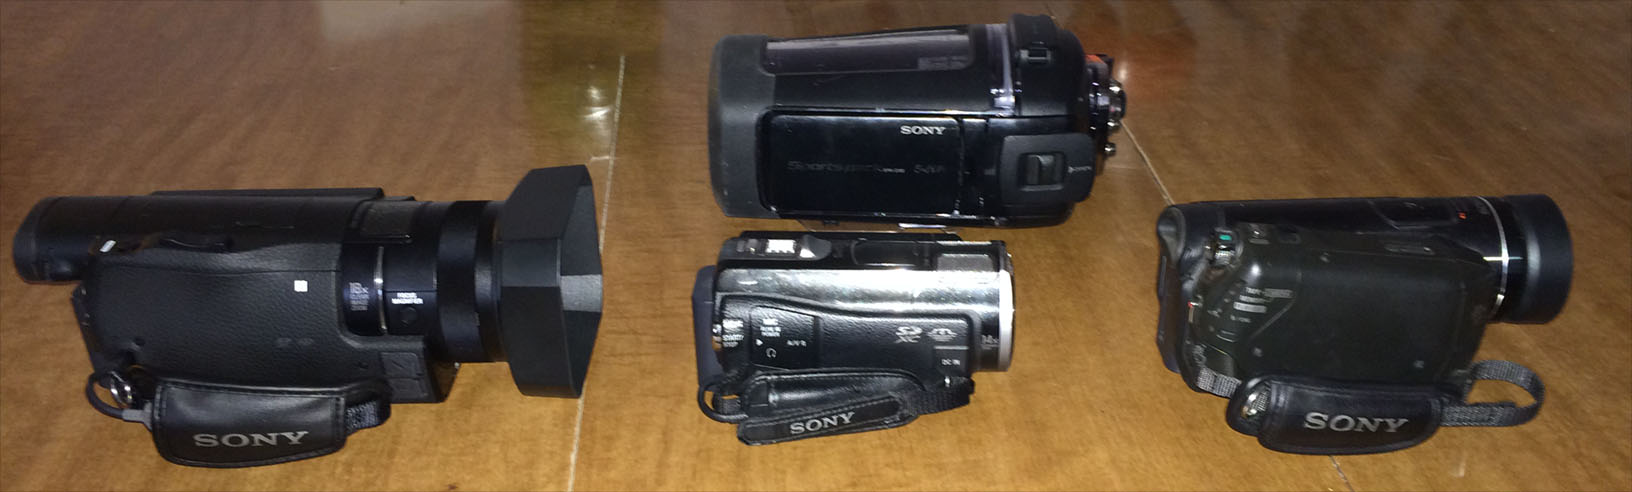 Bottom: FDR-AX100/B, HDR-CX560V, HDR-HC9 Top: SPKCXB for HDR-CX560V